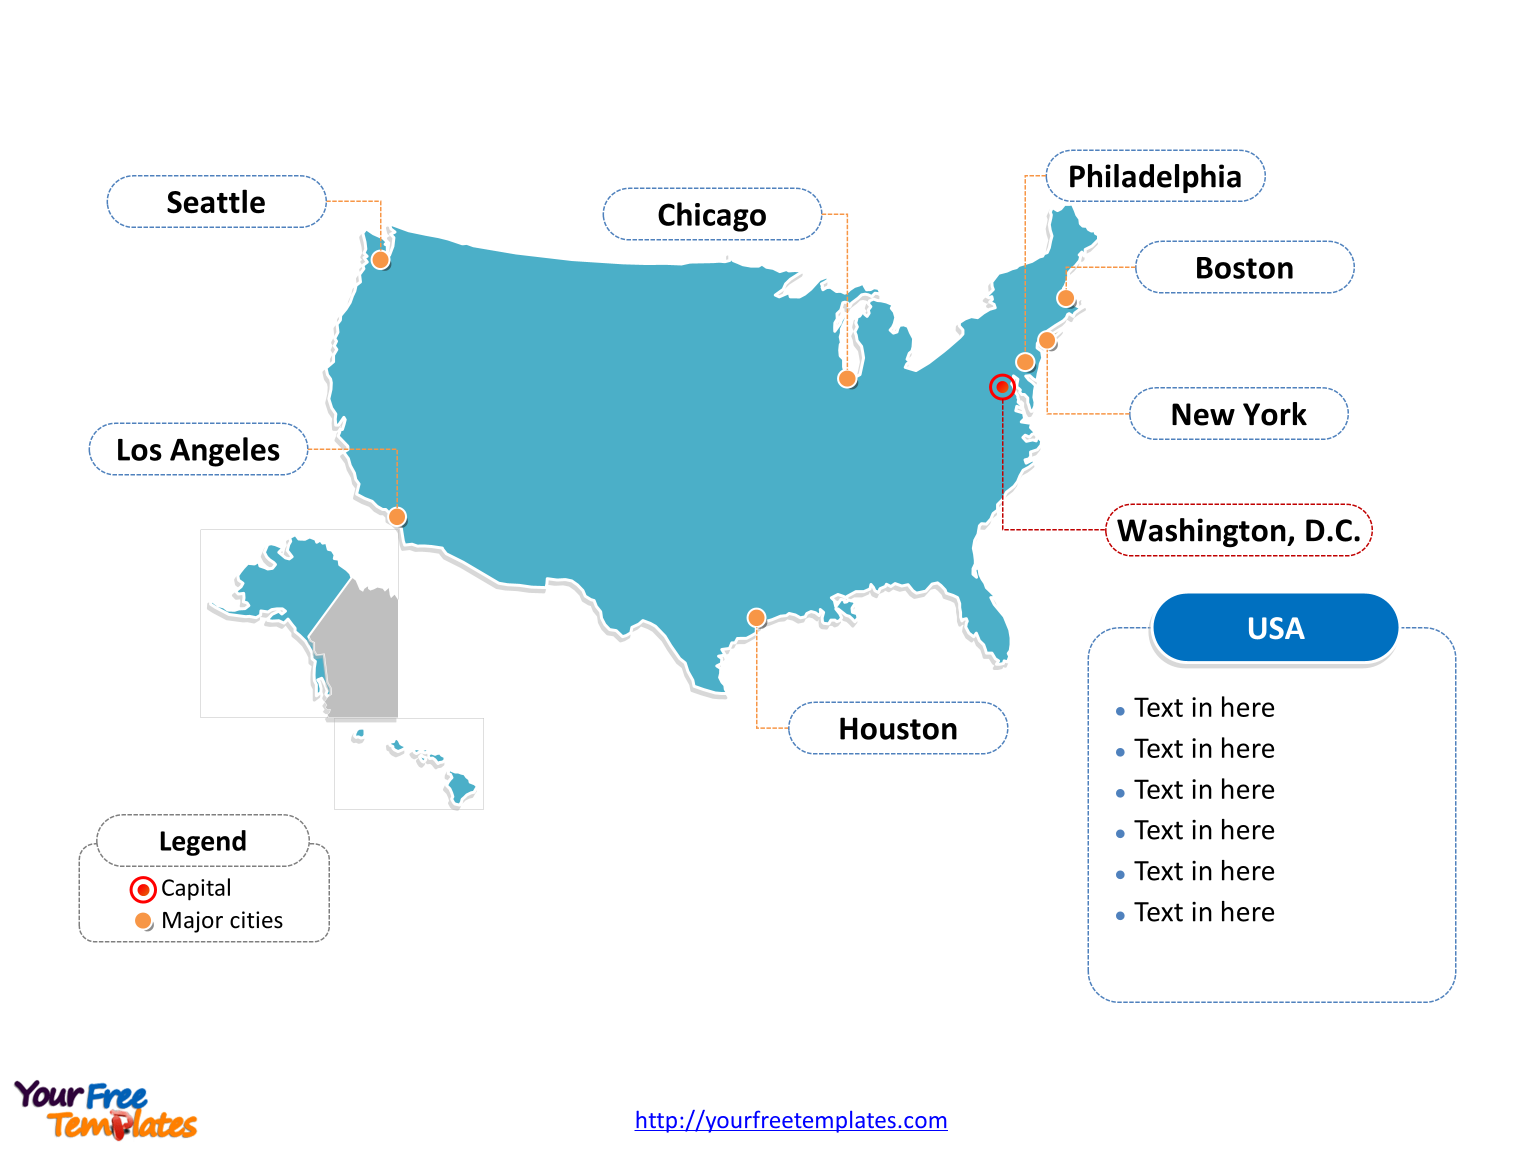 Free USA PowerPoint Map Free PowerPoint Templates - Southeast us map with cities